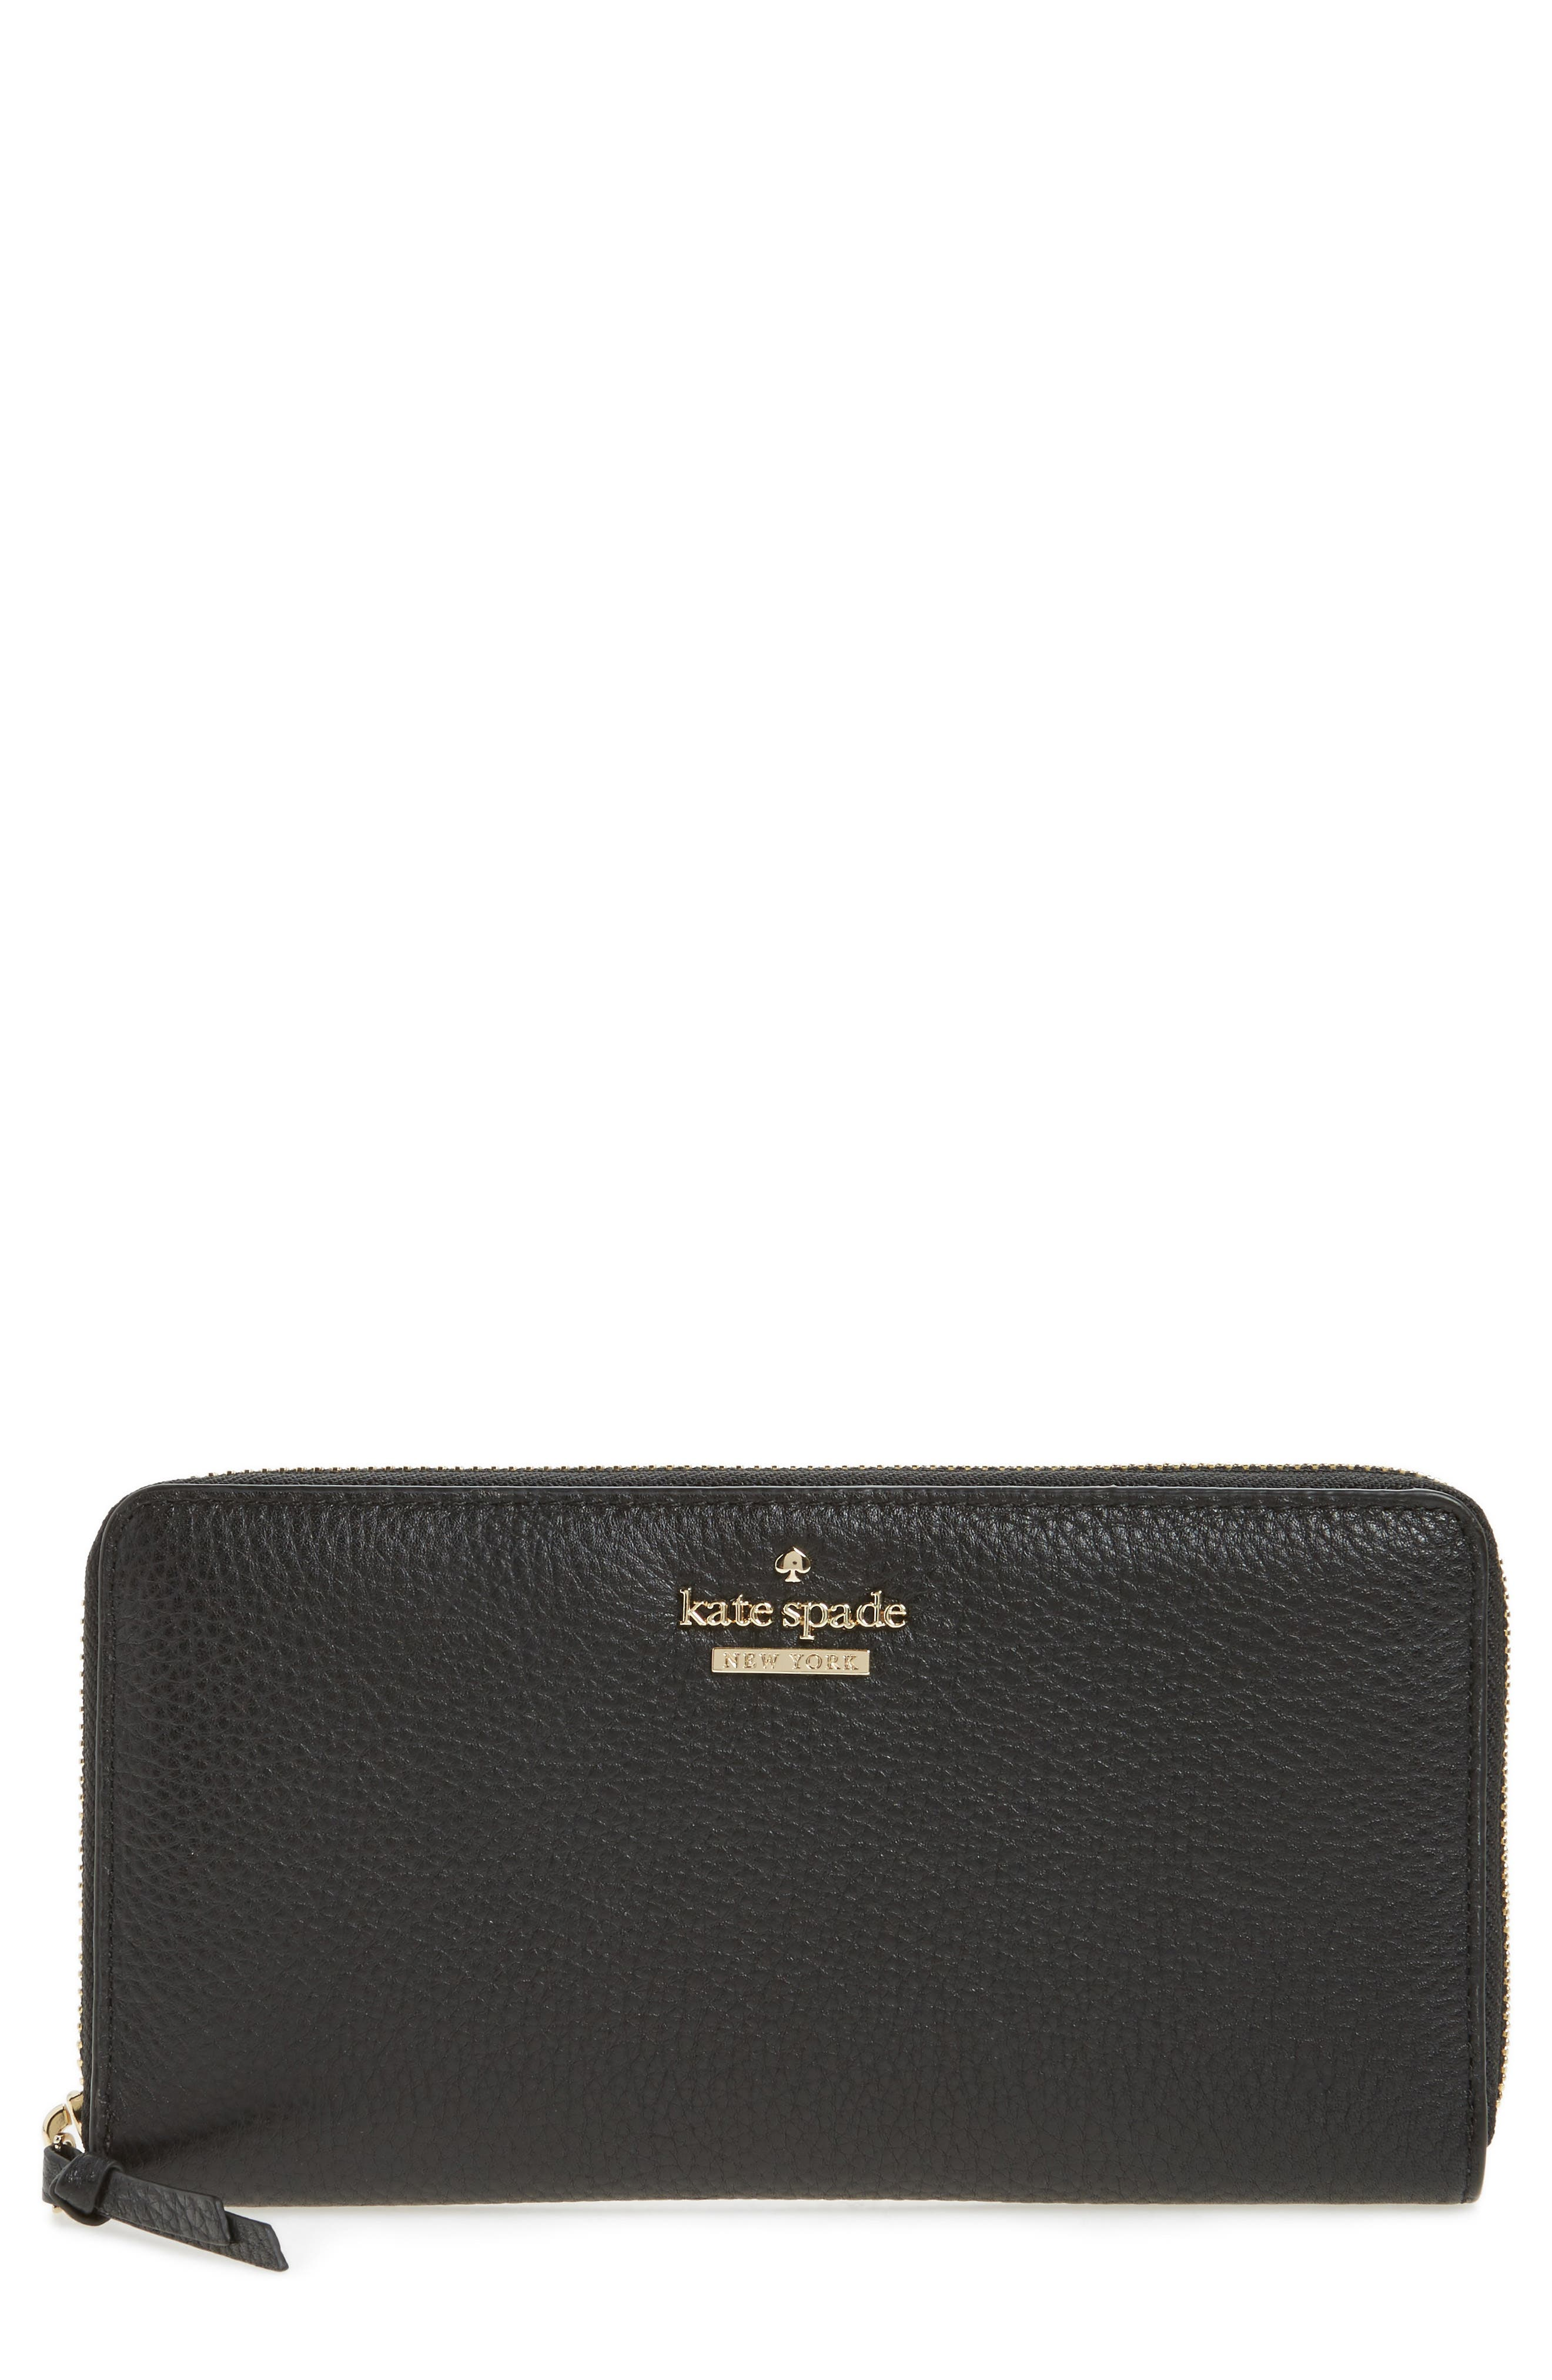 KATE SPADE NEW YORK jackson street lacey leather wallet